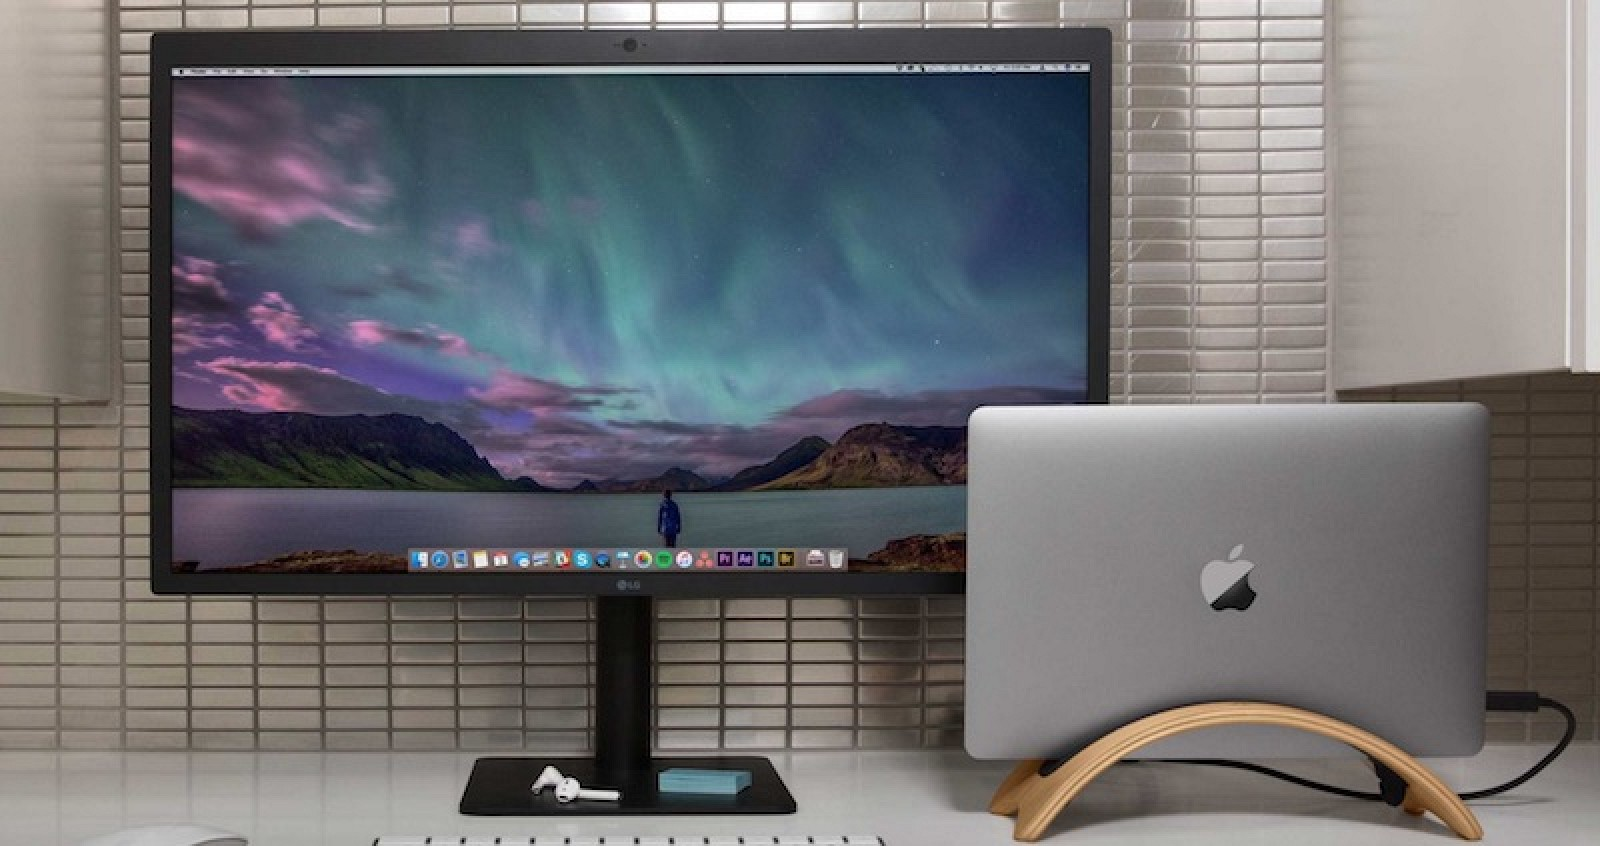 8783f067463 Twelve South's Hardwood BookArc Möd Stand Now Compatible With 2016 and  Newer MacBook Pro - MacRumors